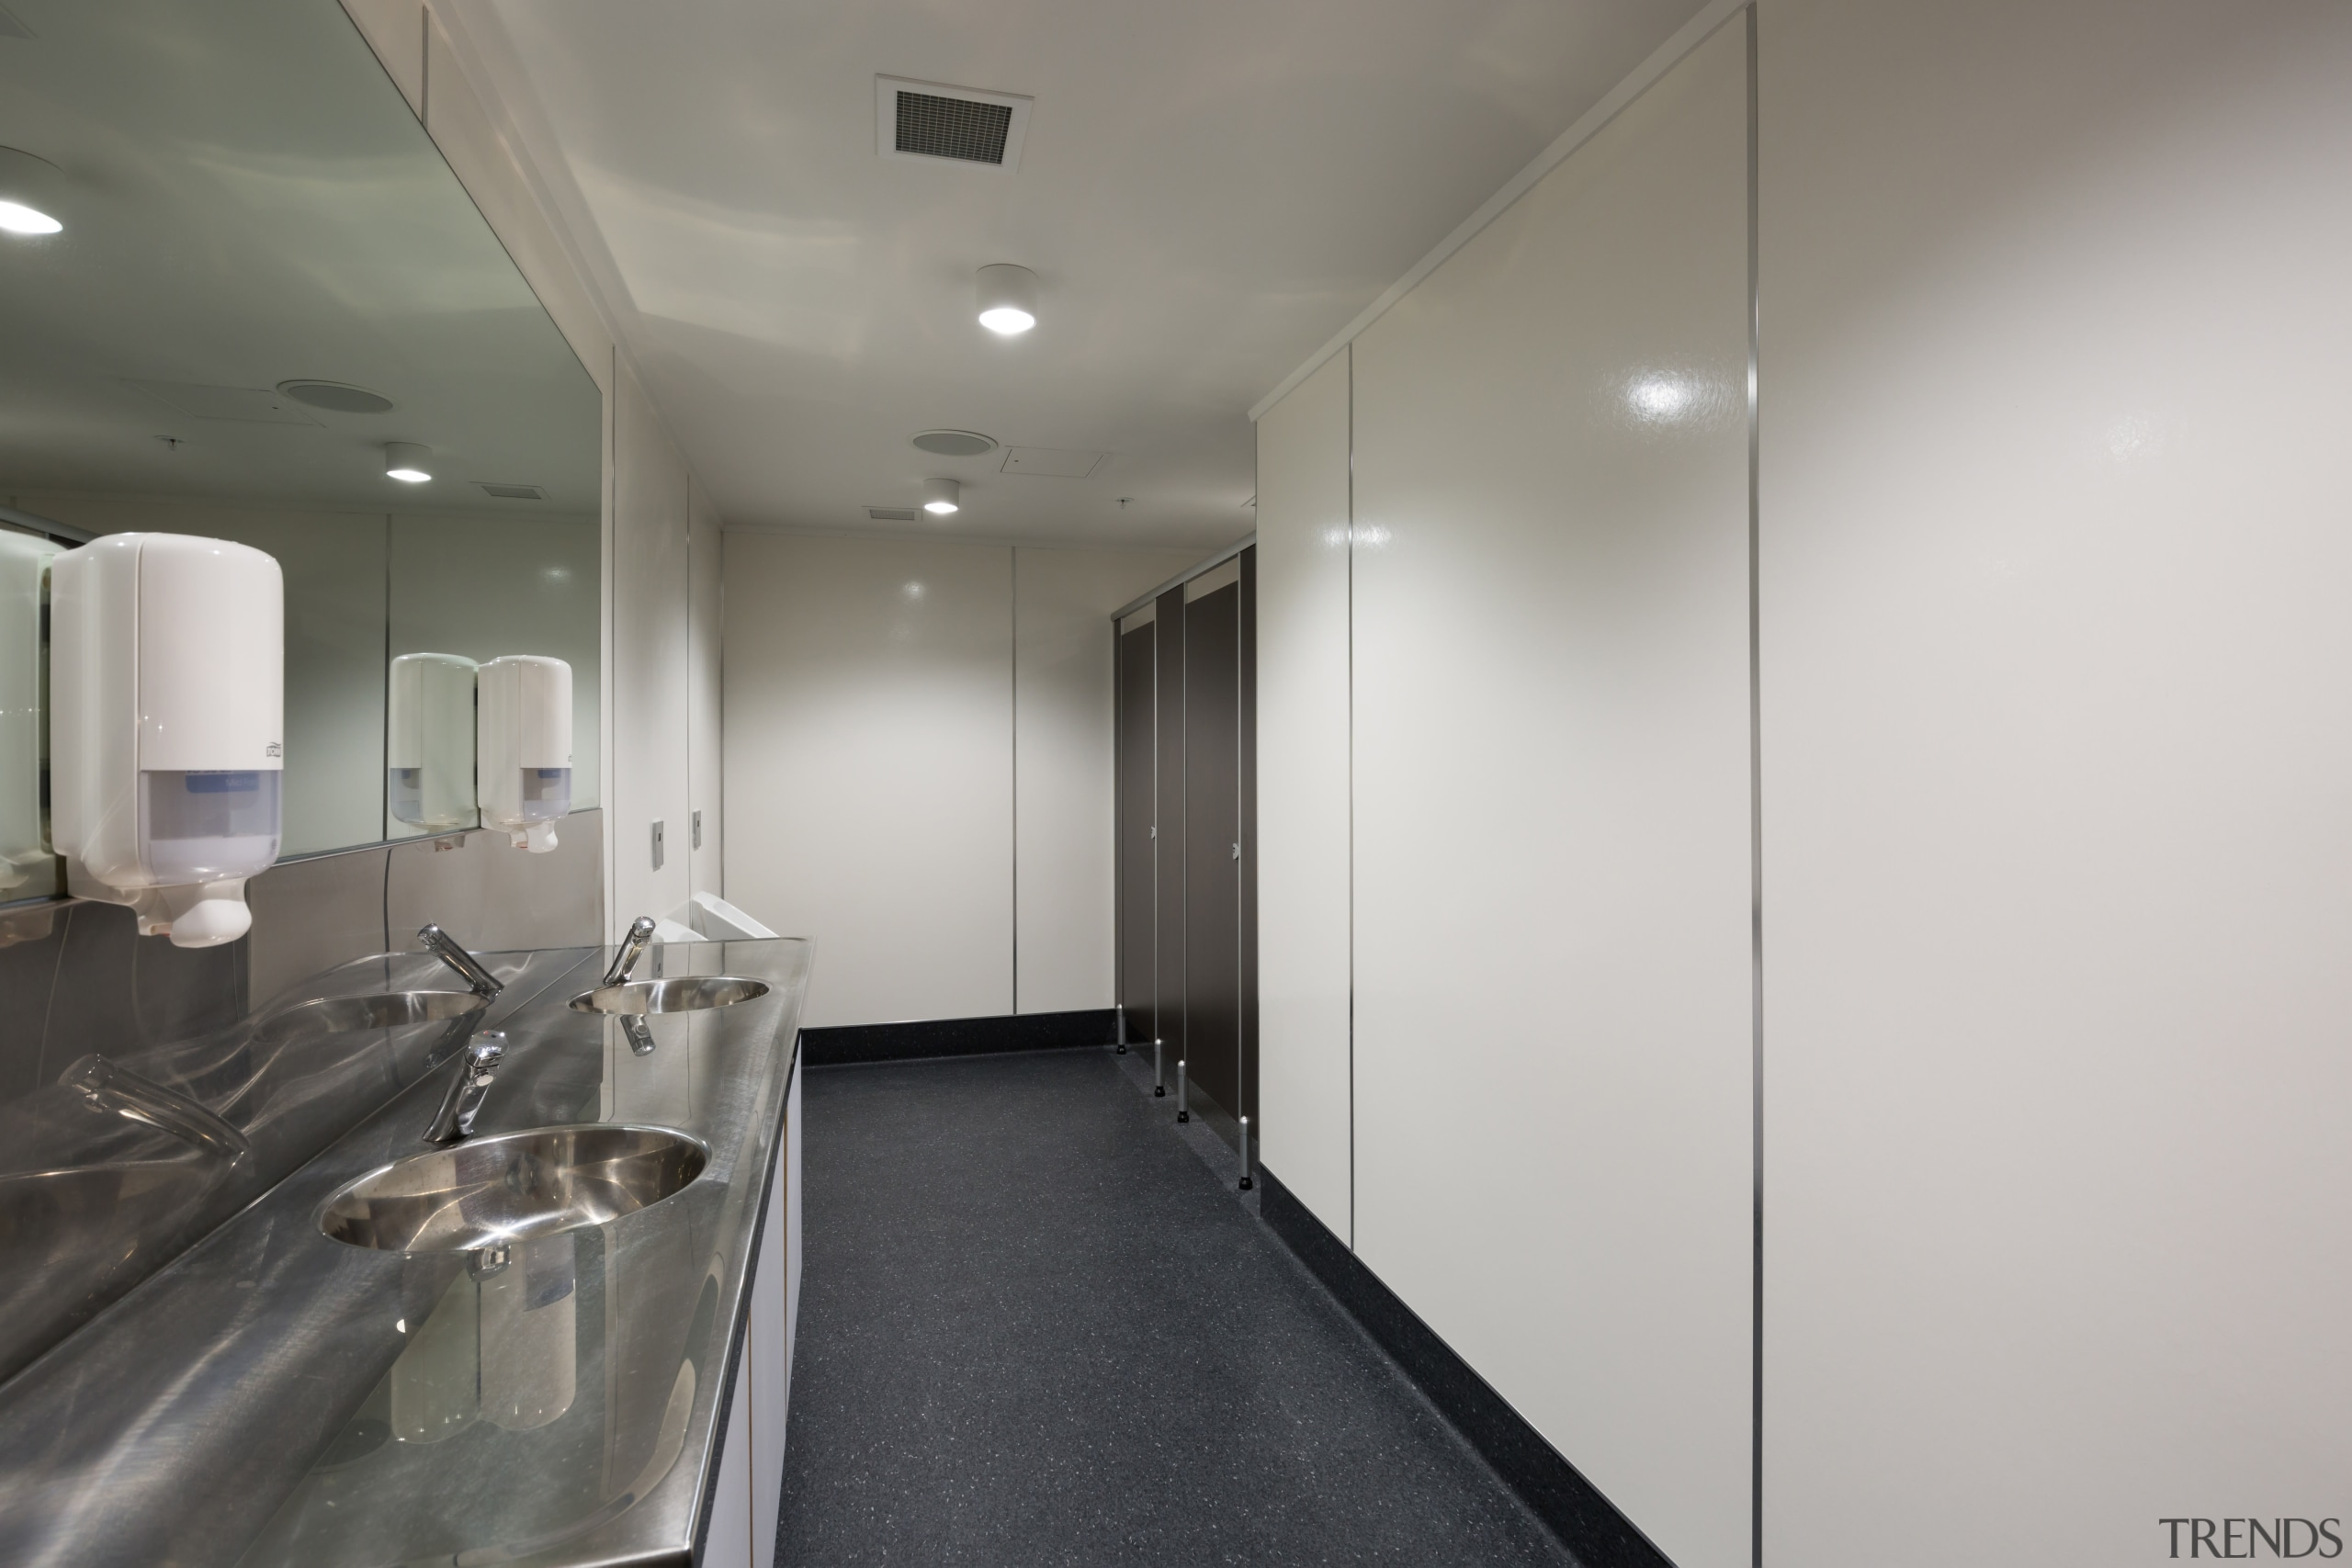 High-impact strength-, stain-, scratch- and moisture-resistant, and not architecture, ceiling, floor, glass, interior design, office, real estate, gray